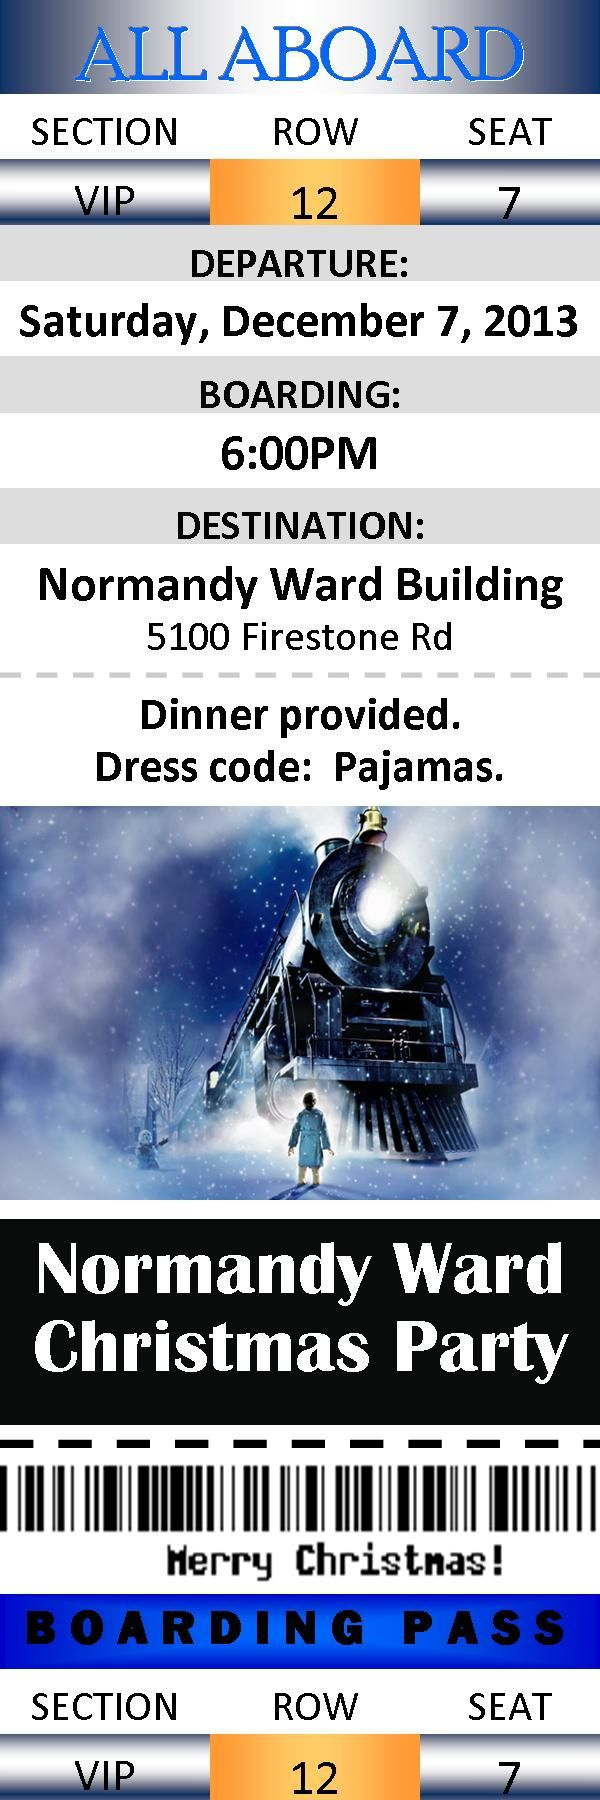 Polar Express Ward Christmas Party tickets